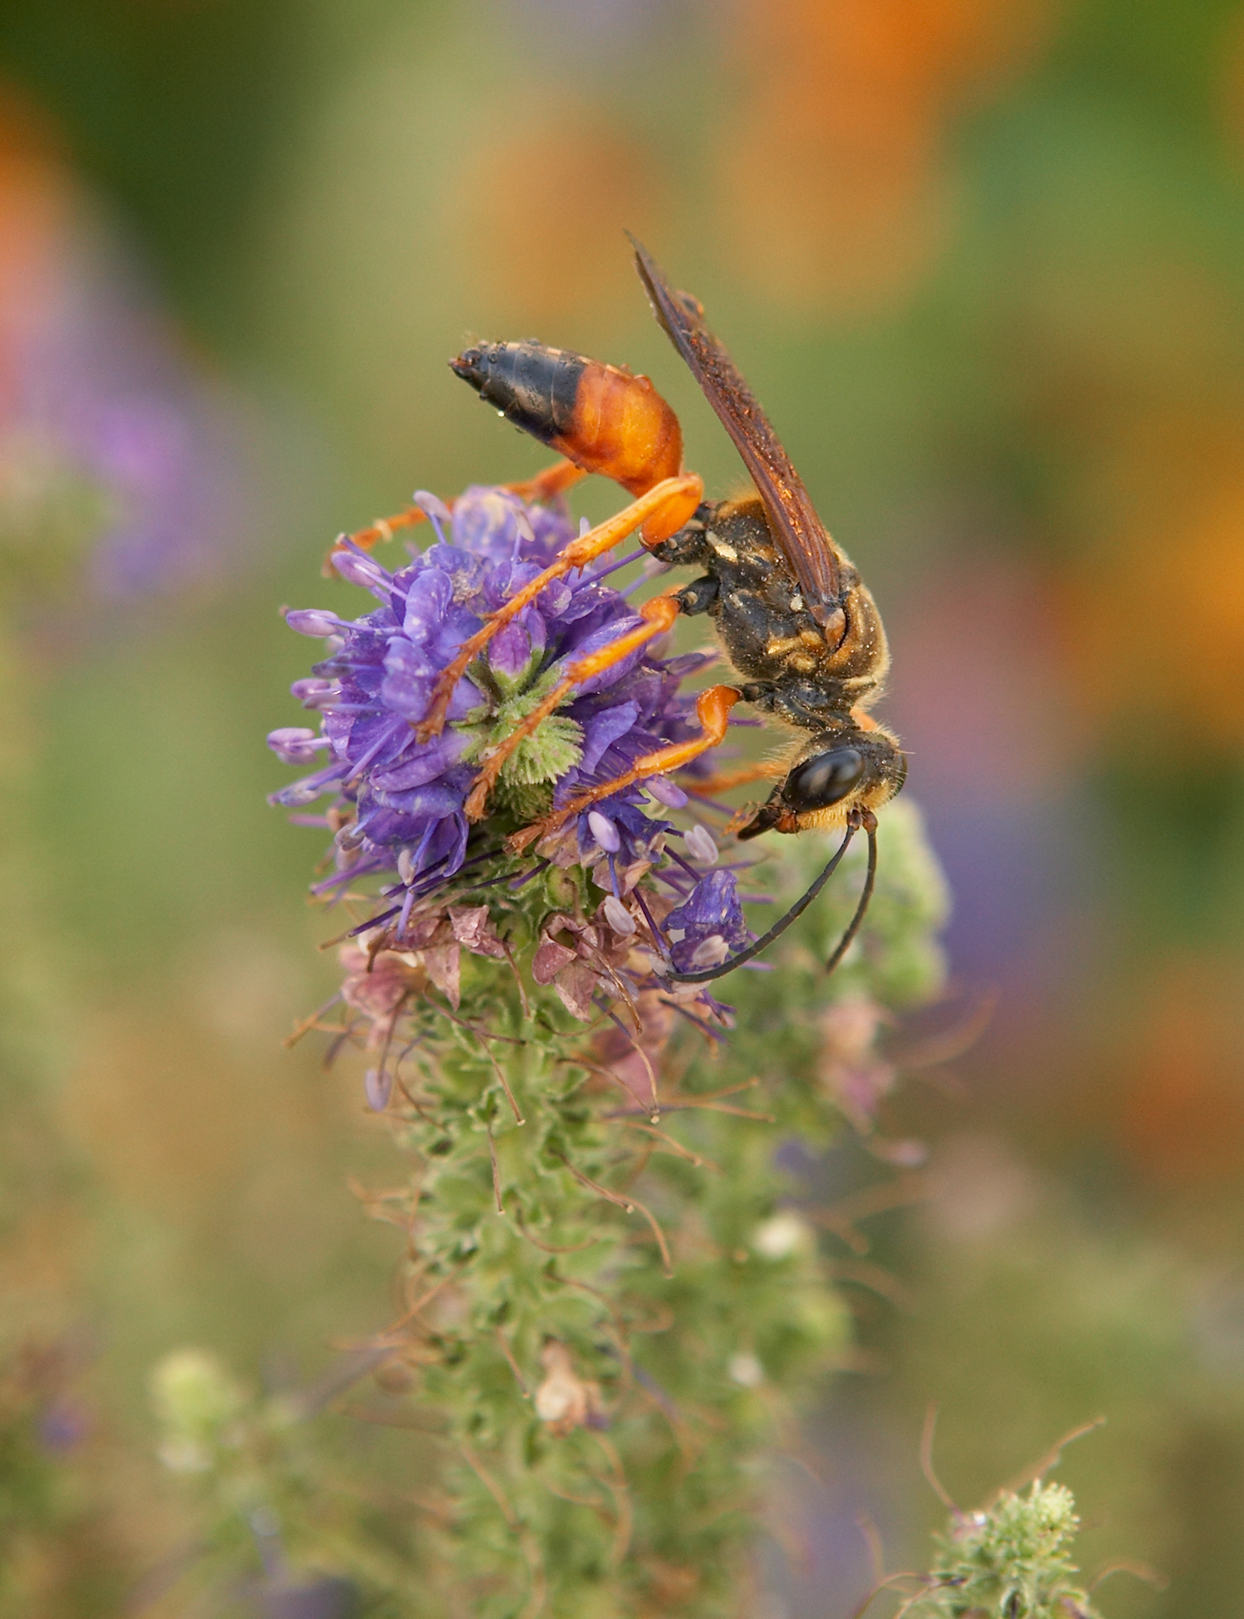 wasp on top of veronica plant flower